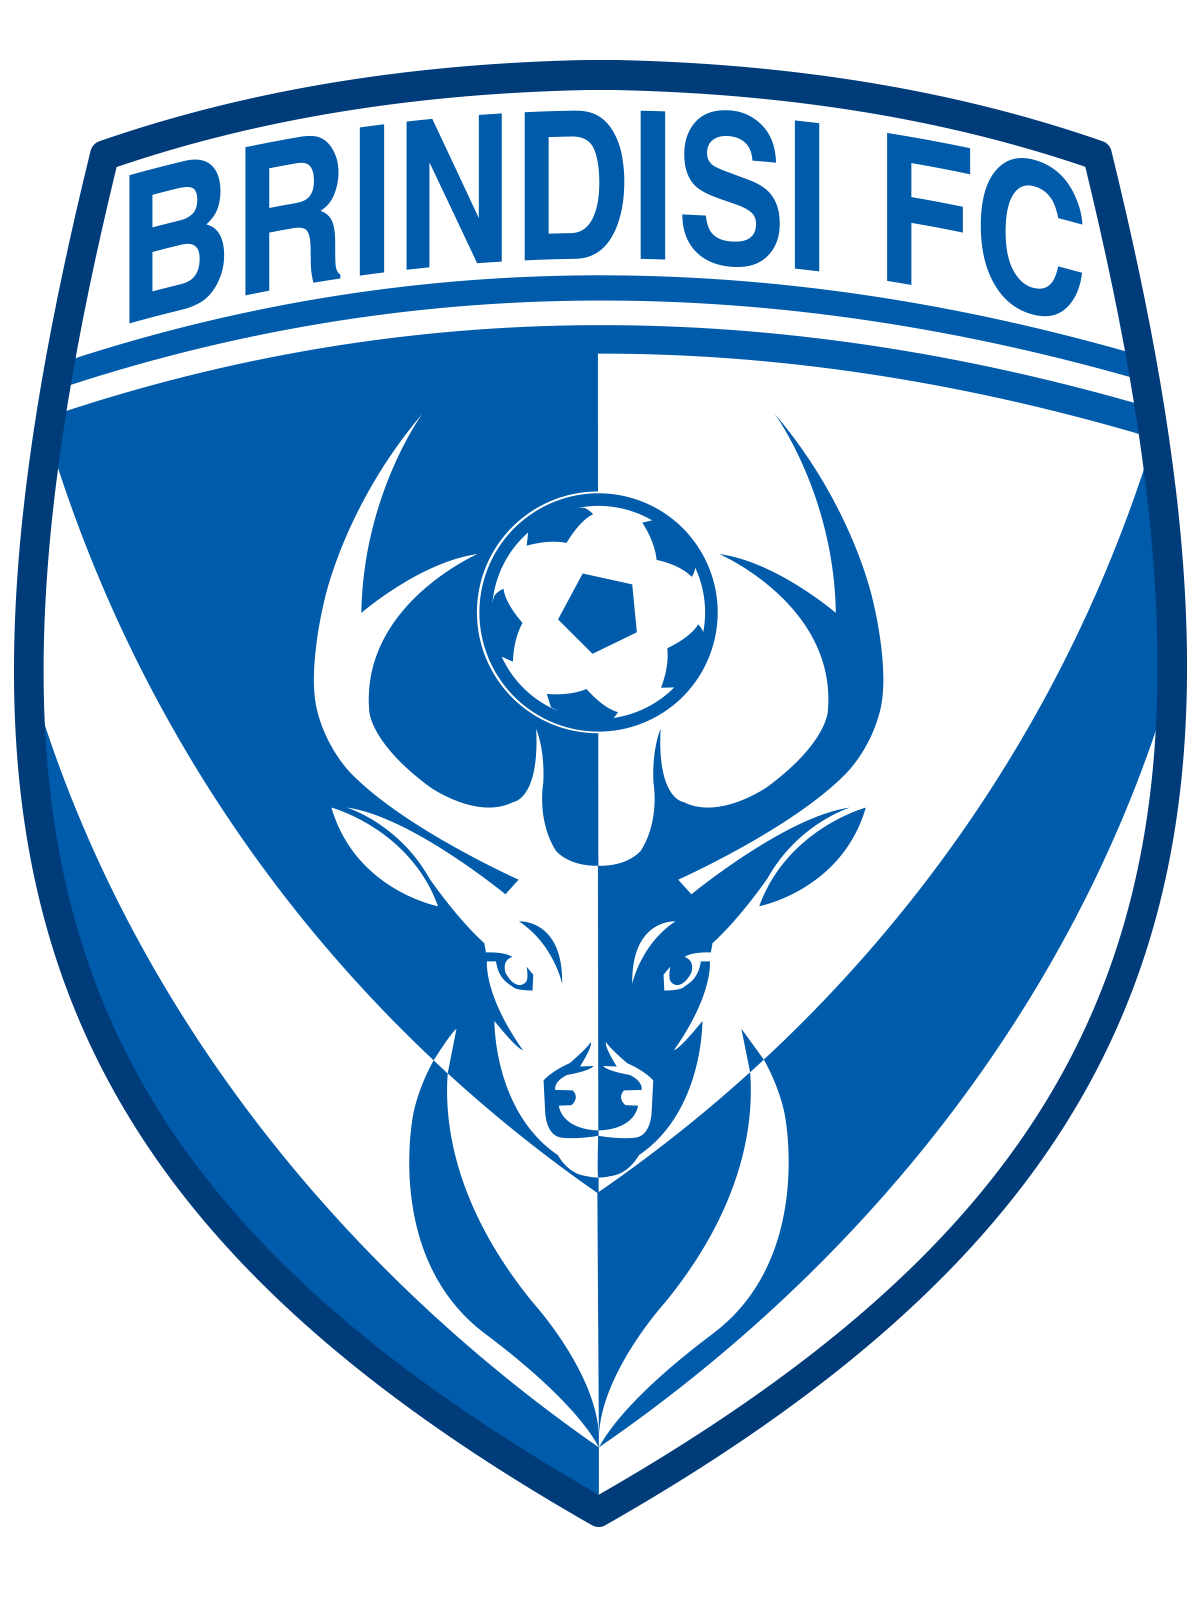 https://image.ibb.co/dP1QDw/ssd_brindisi_fc.png